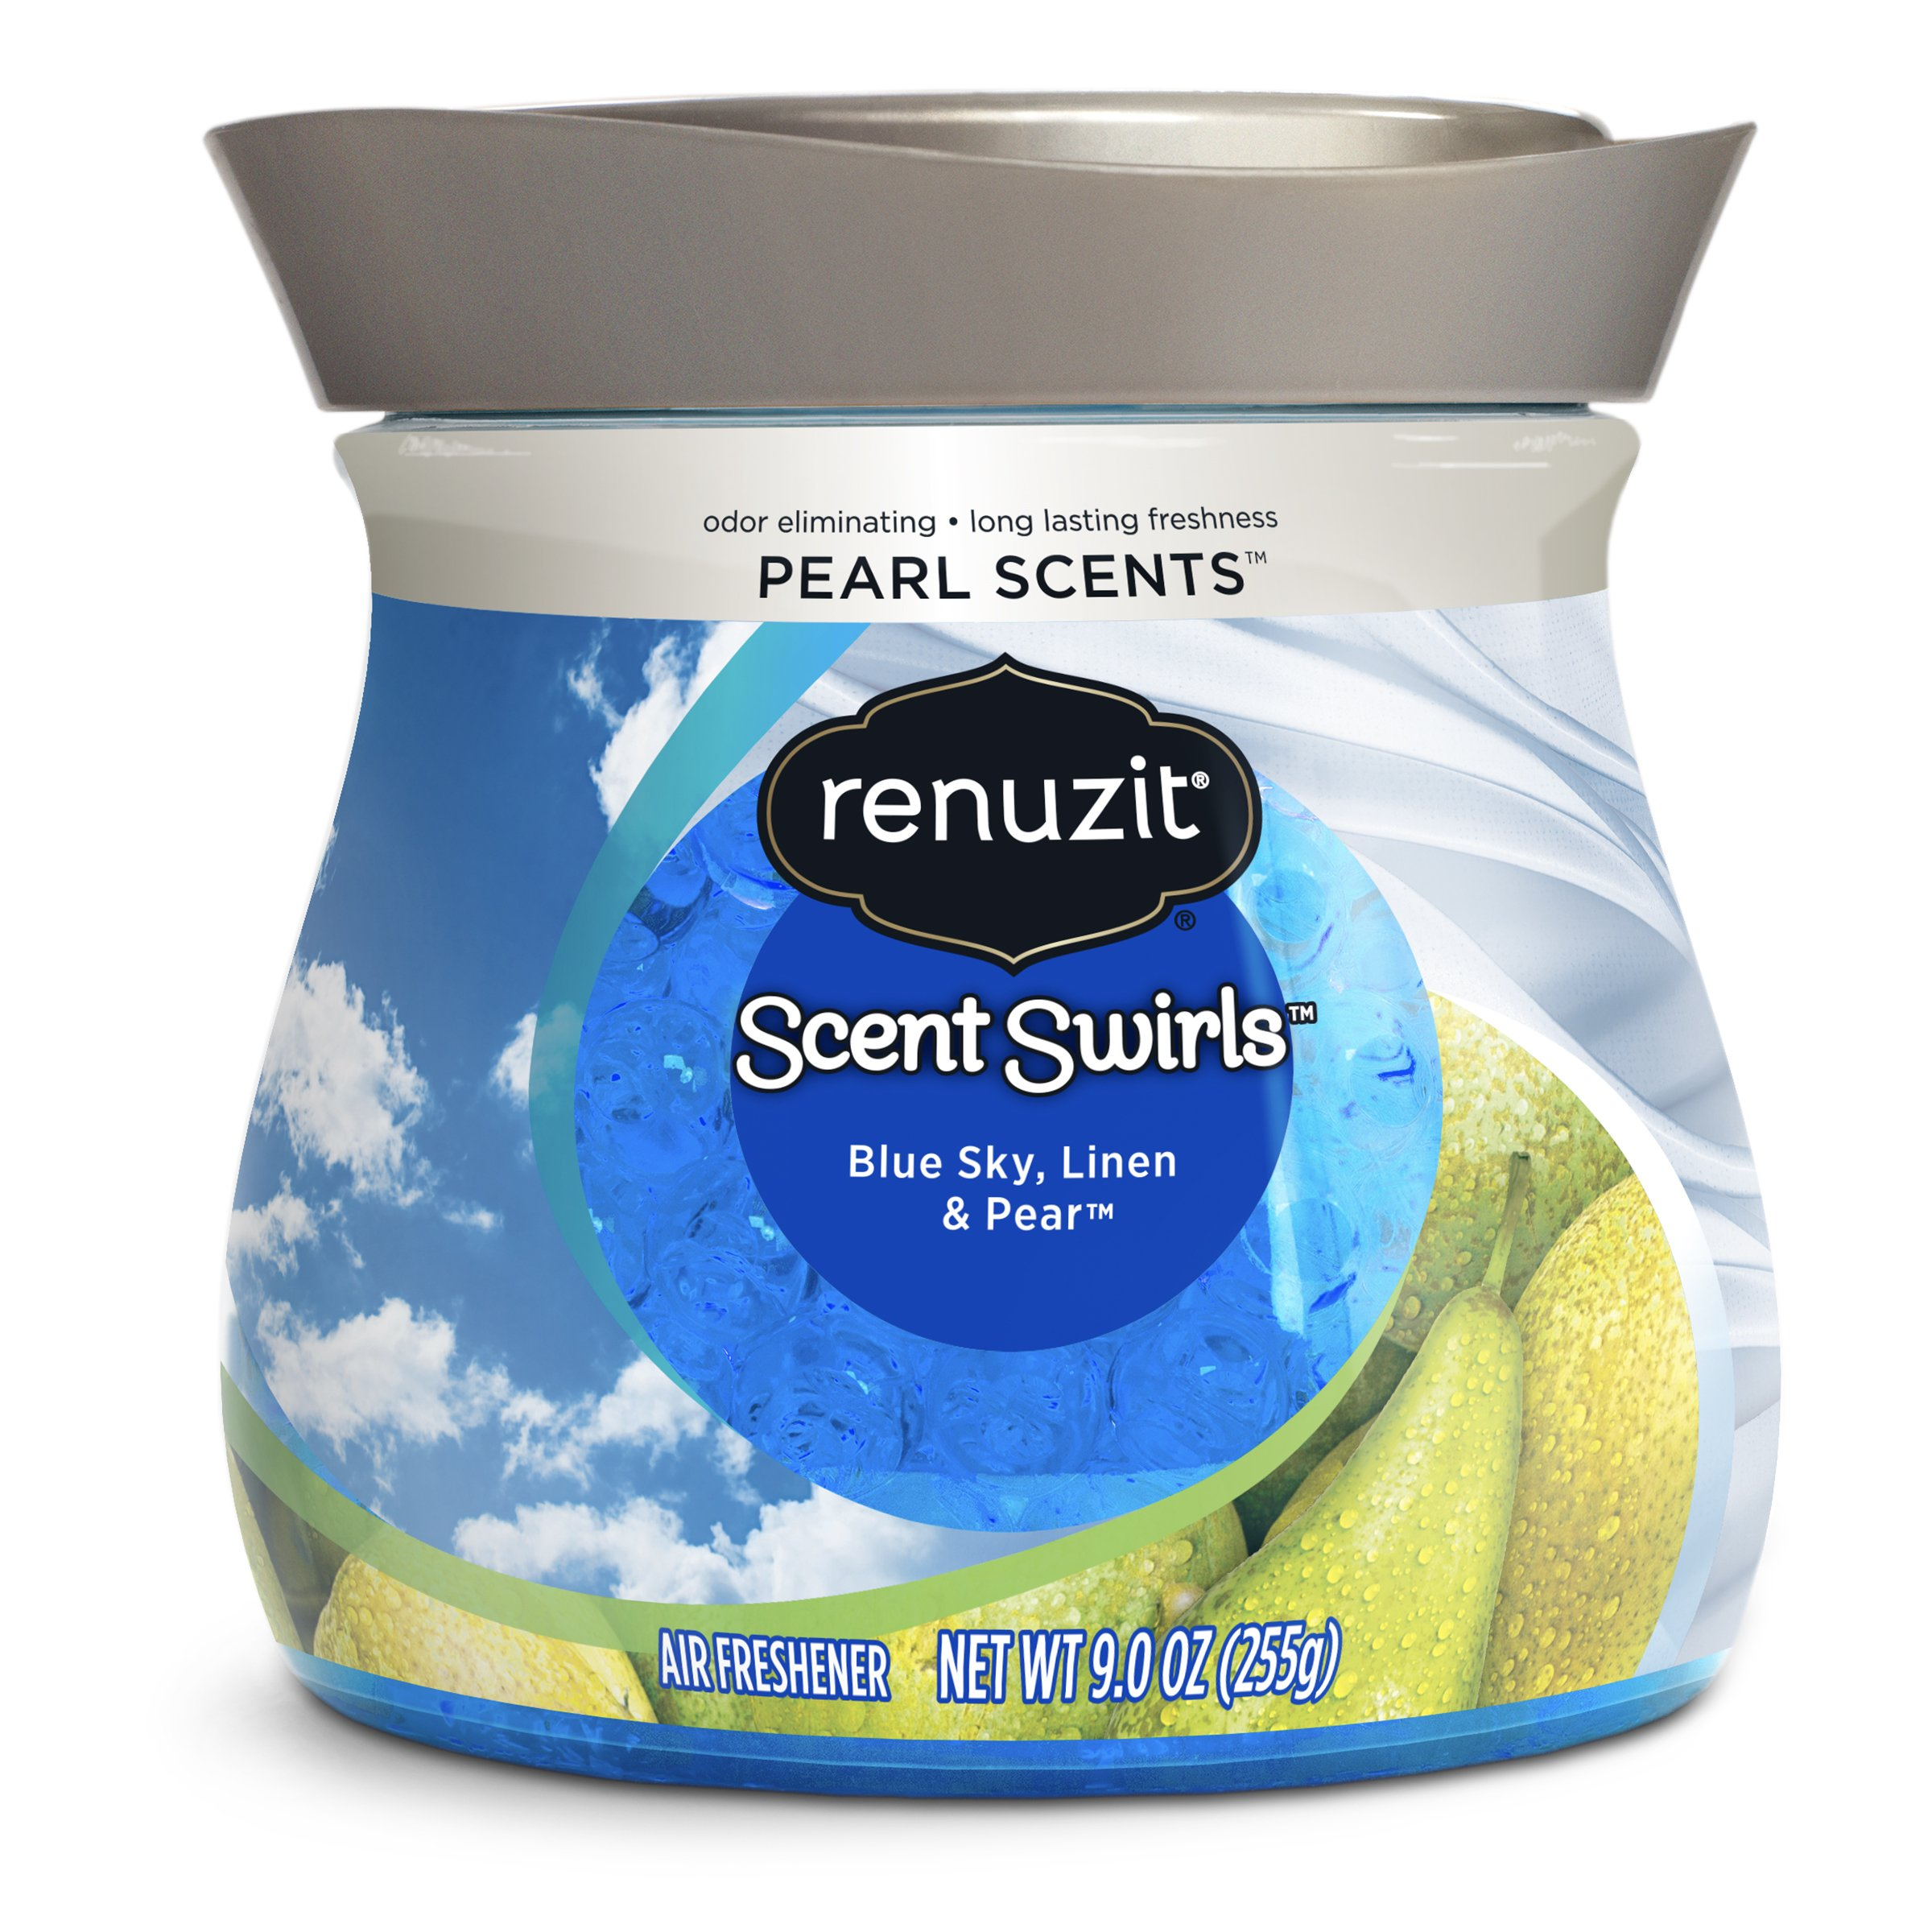 Renuzit Pearl Scents Air Freshener, Blue Sky, Linen & Pear, Pack of 8, (Packaging May Vary) by Renuzit